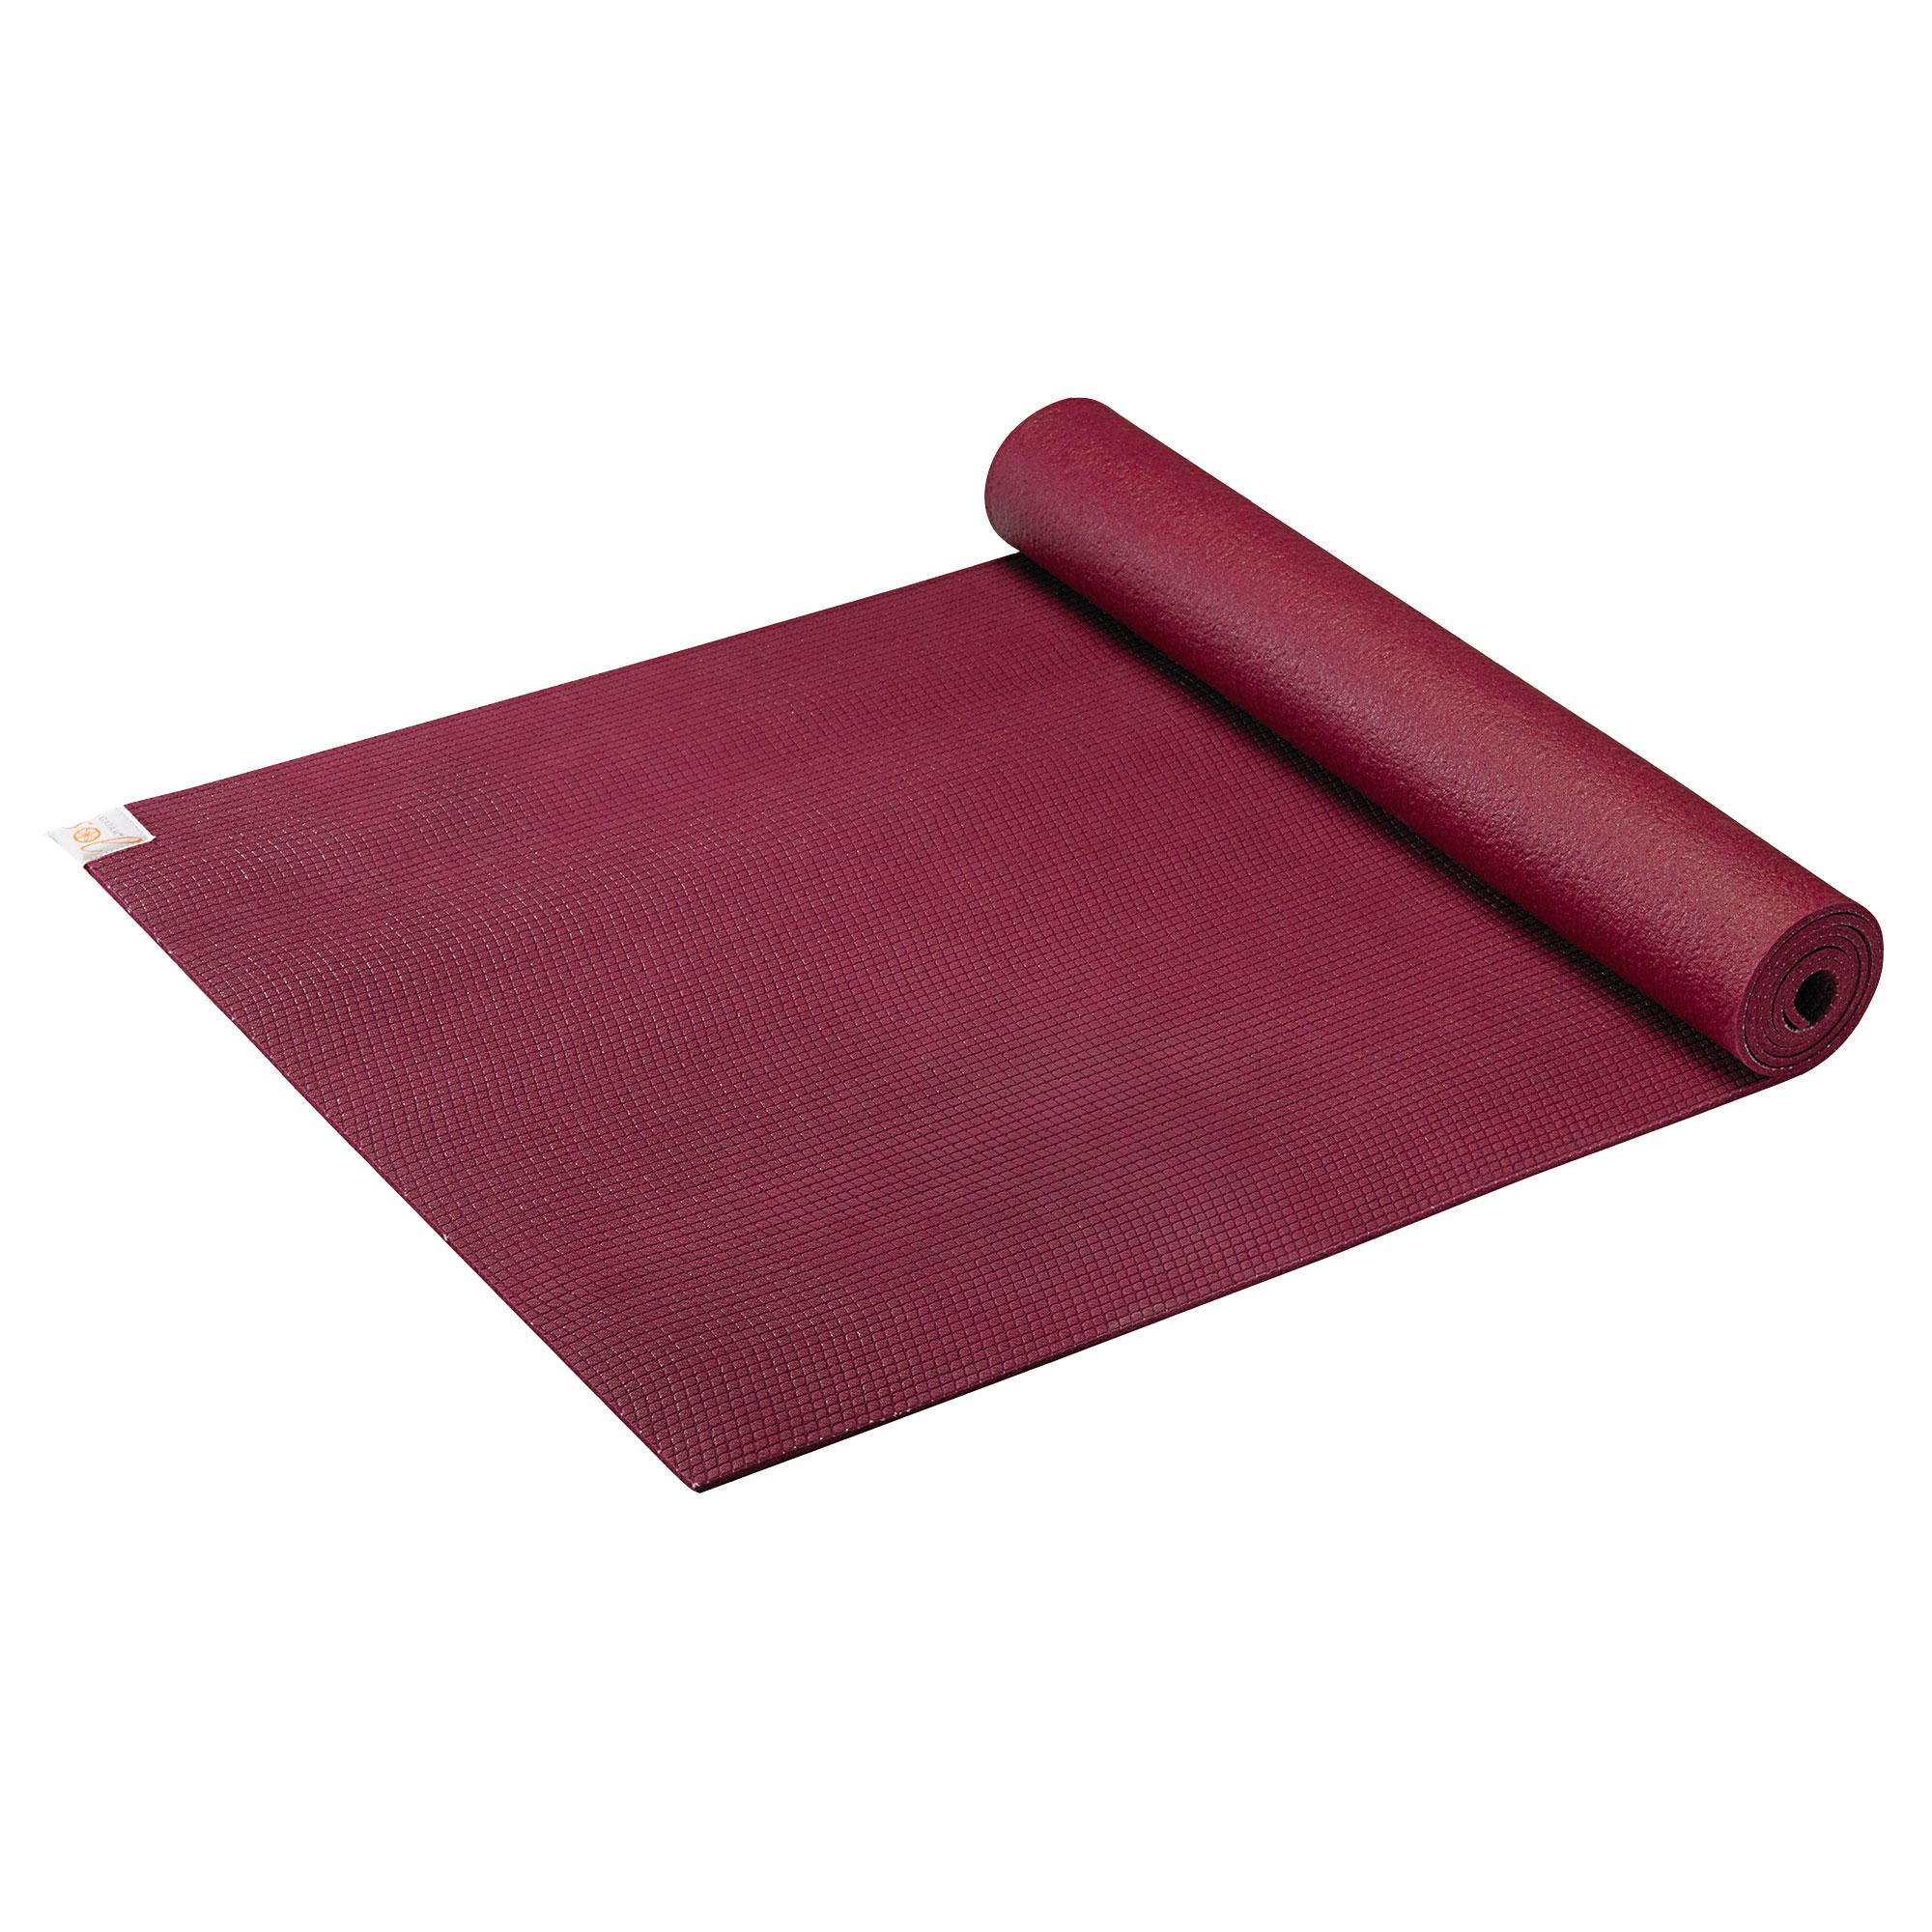 yoga mat dragonfly harmony accessories mats lite natural professional zoom rubber jade